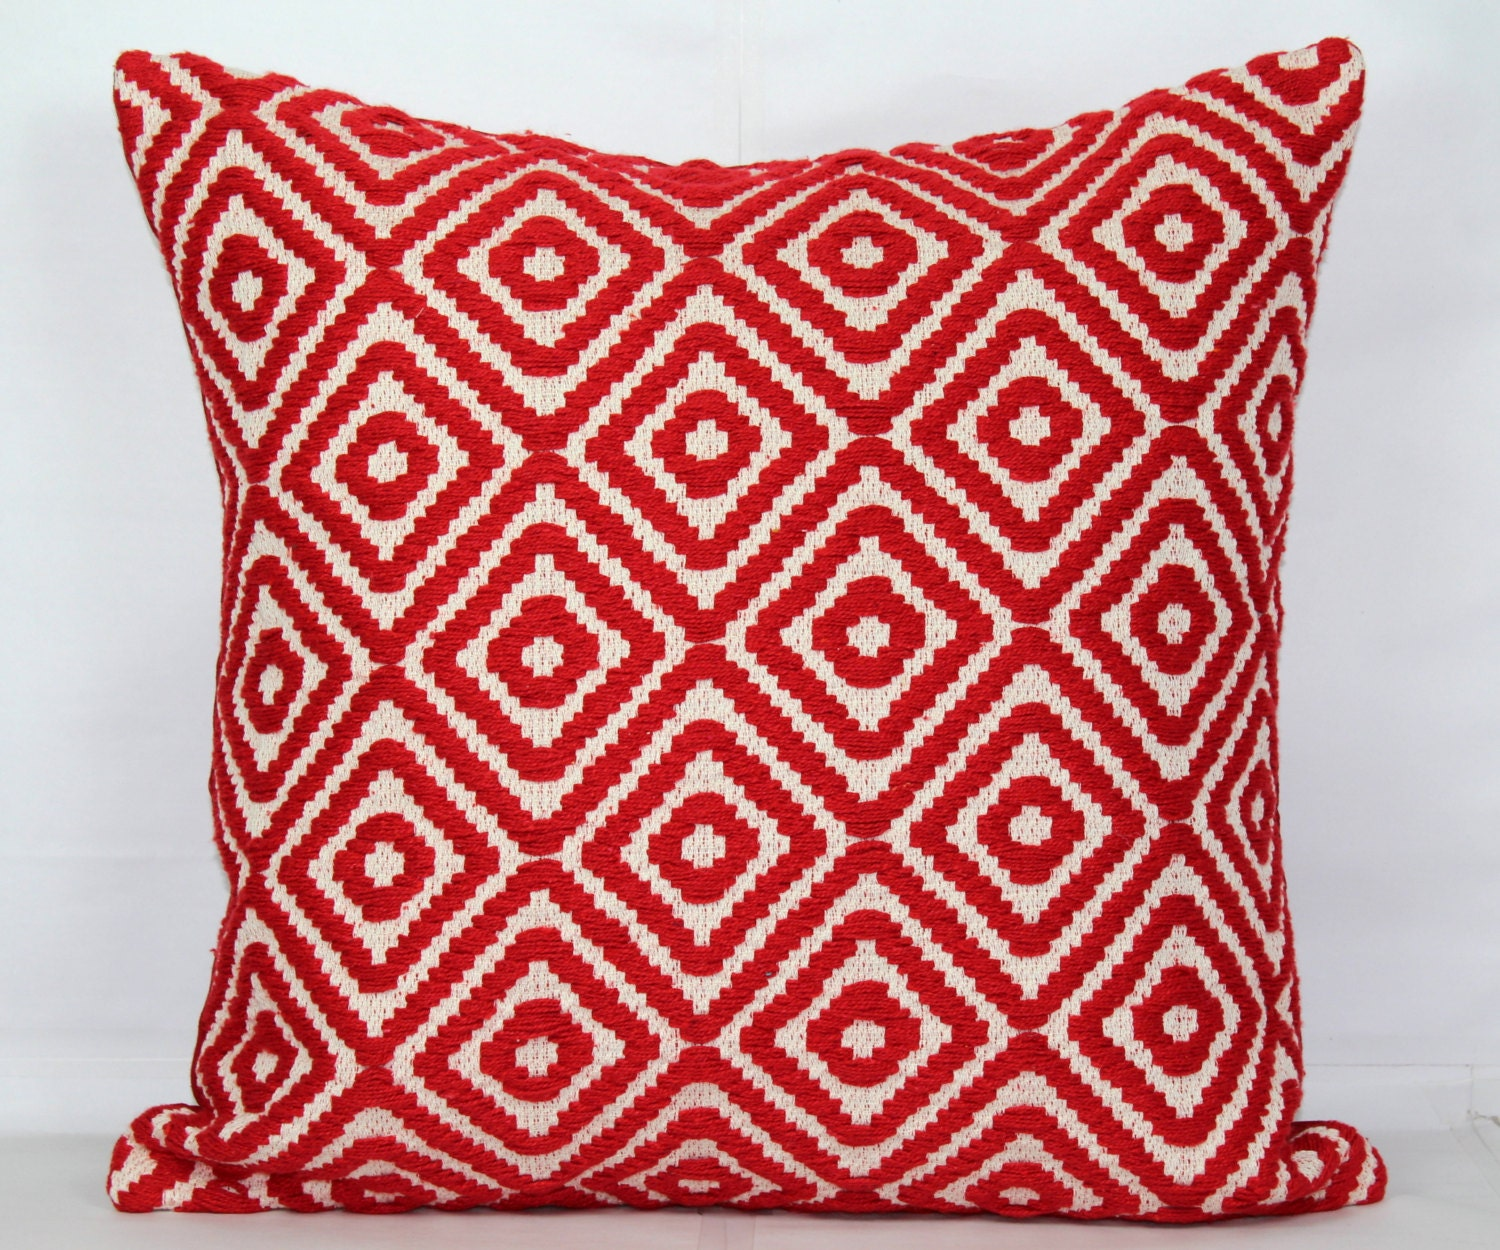 Target Red Decorative Pillows : pillow covers 20?20 target Roselawnlutheran